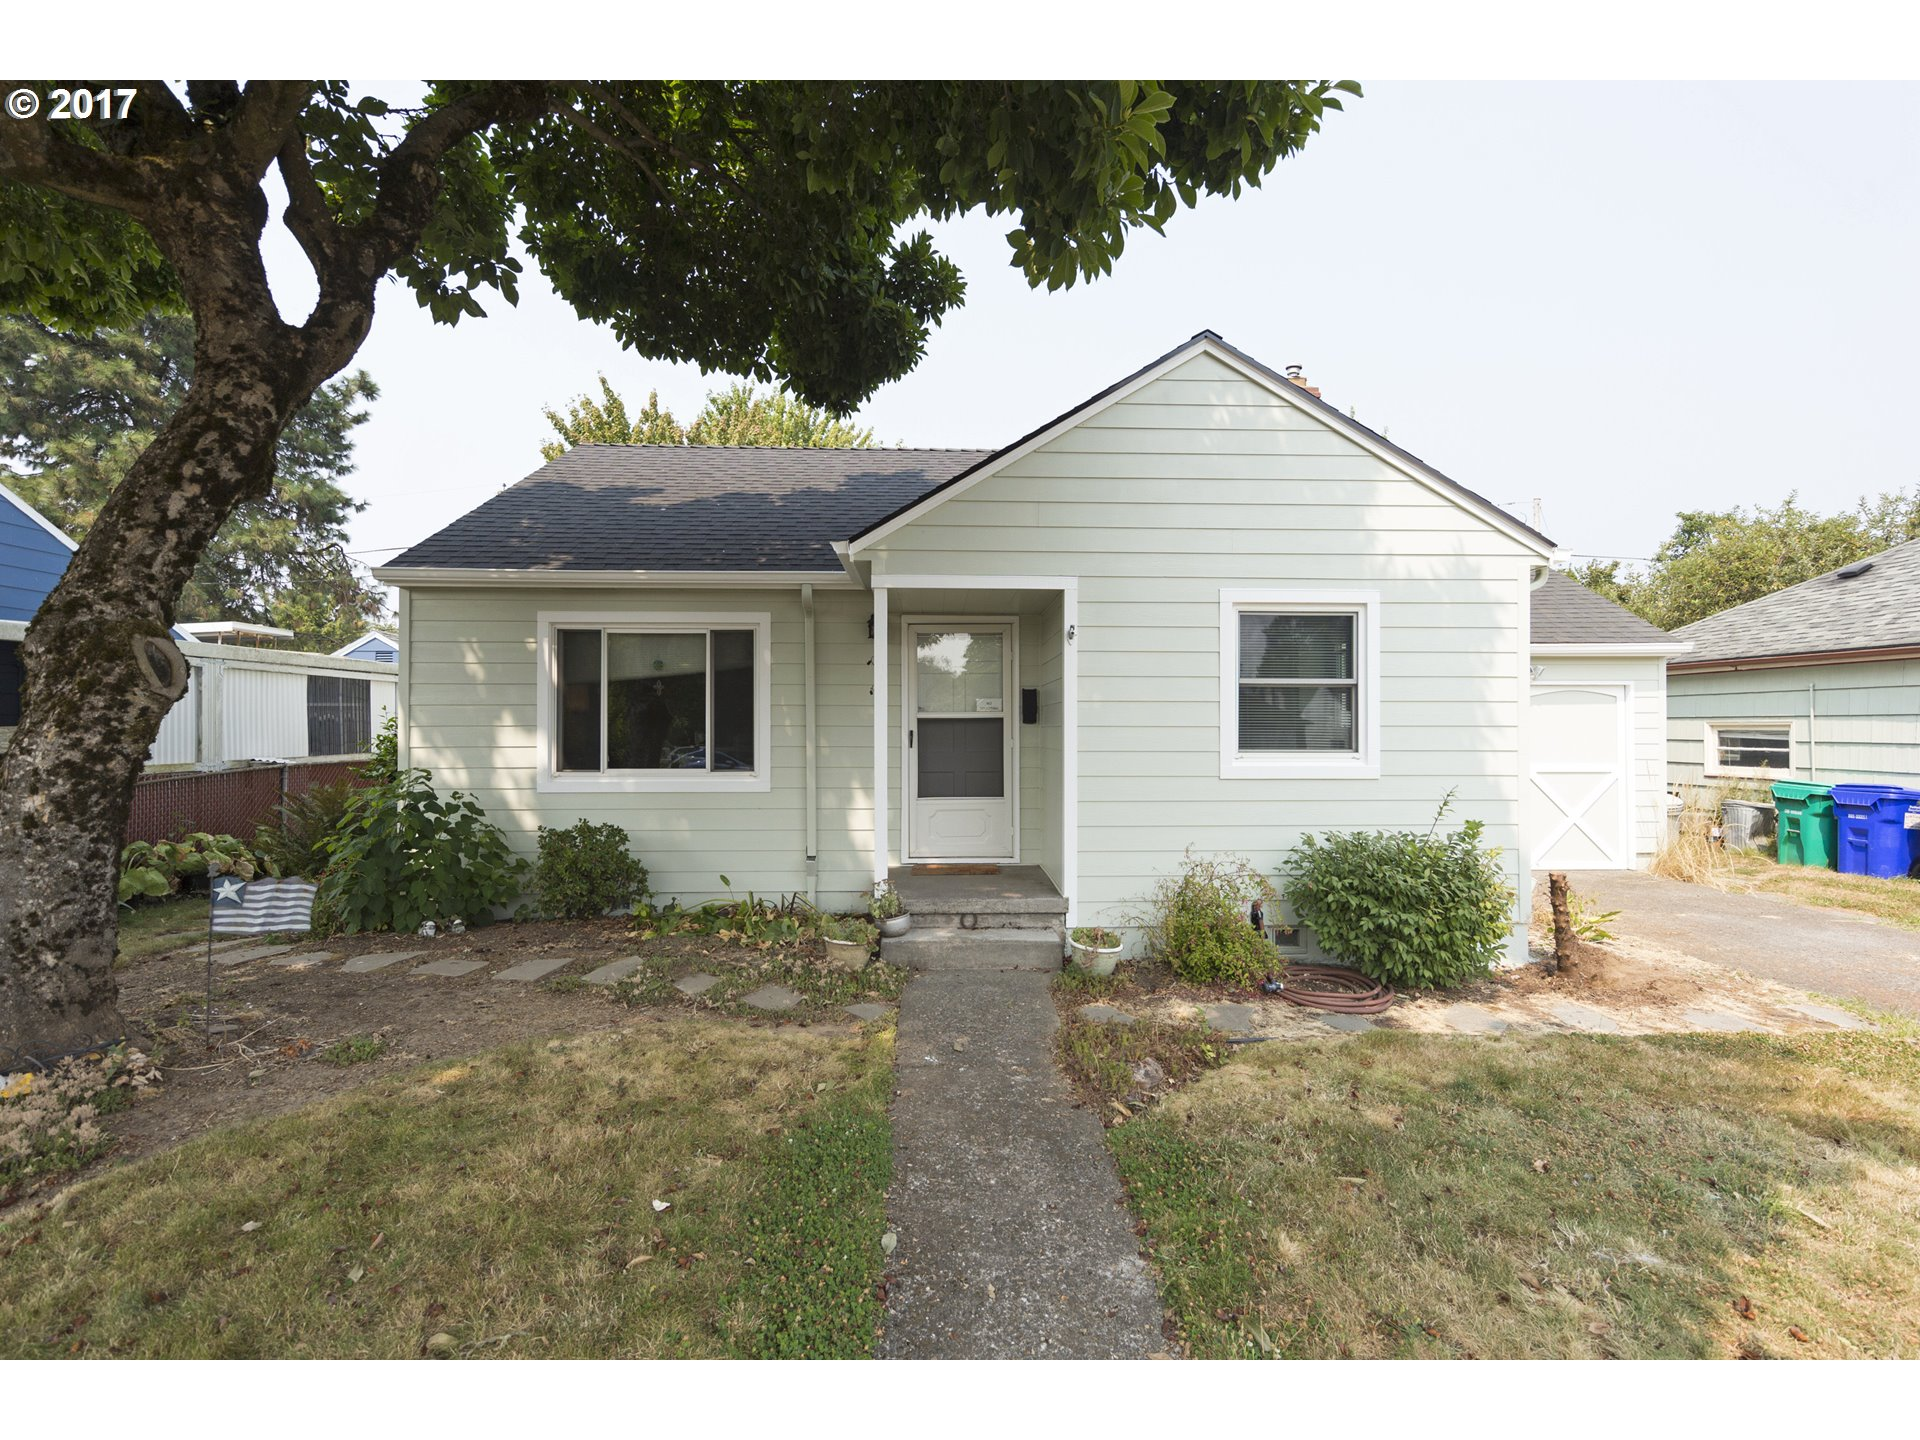 c0a8d10208f Portland Area Residential | 9321 SE YAMHILL ST | Portland, OR 97216